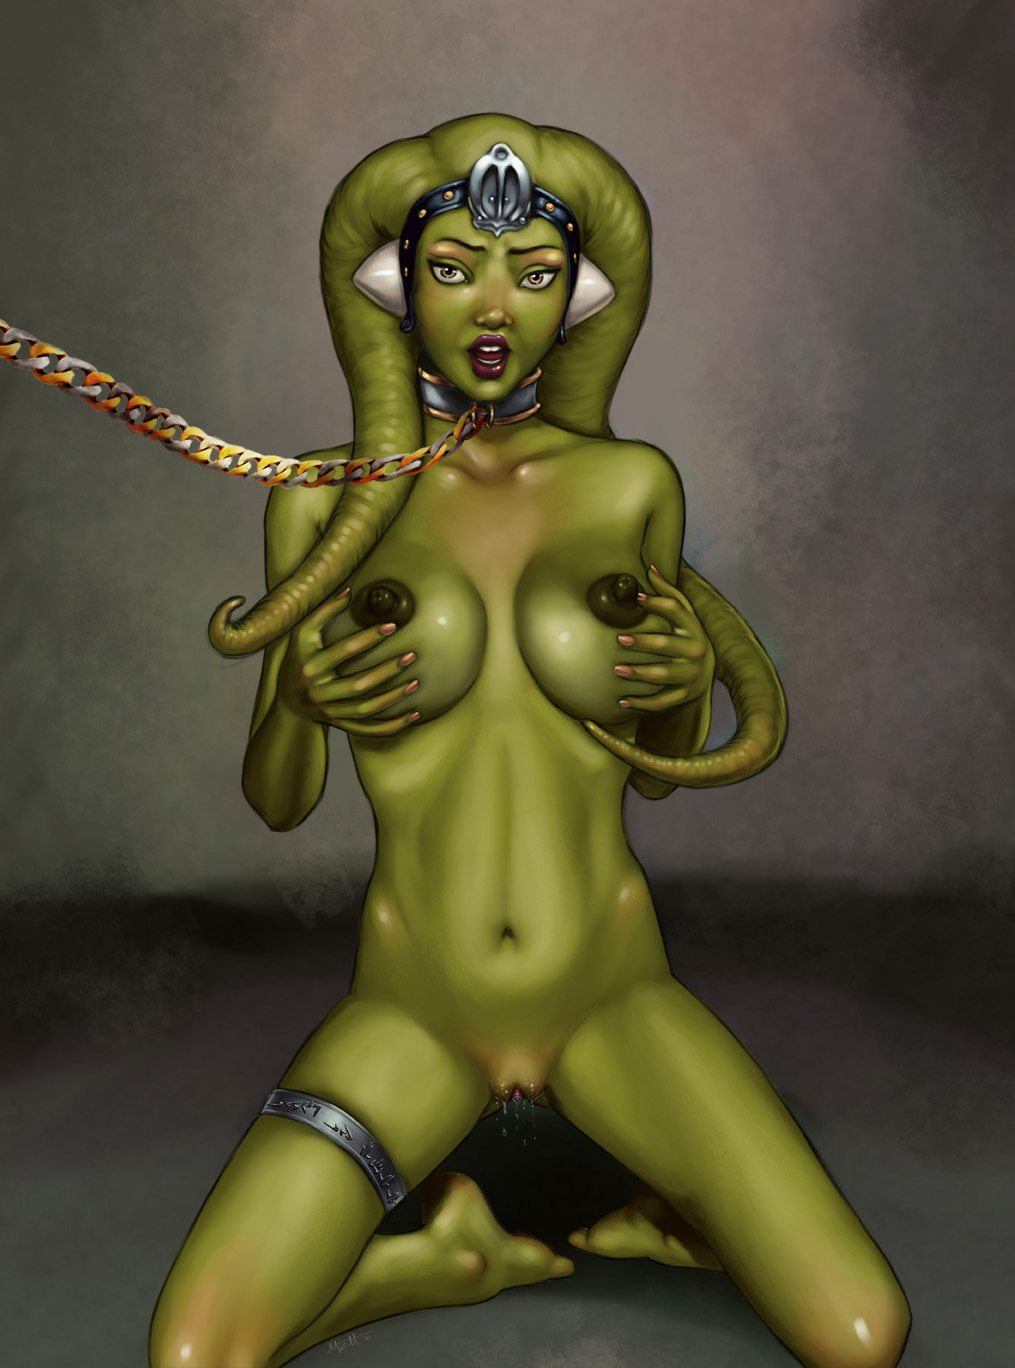 Star wars hot nude